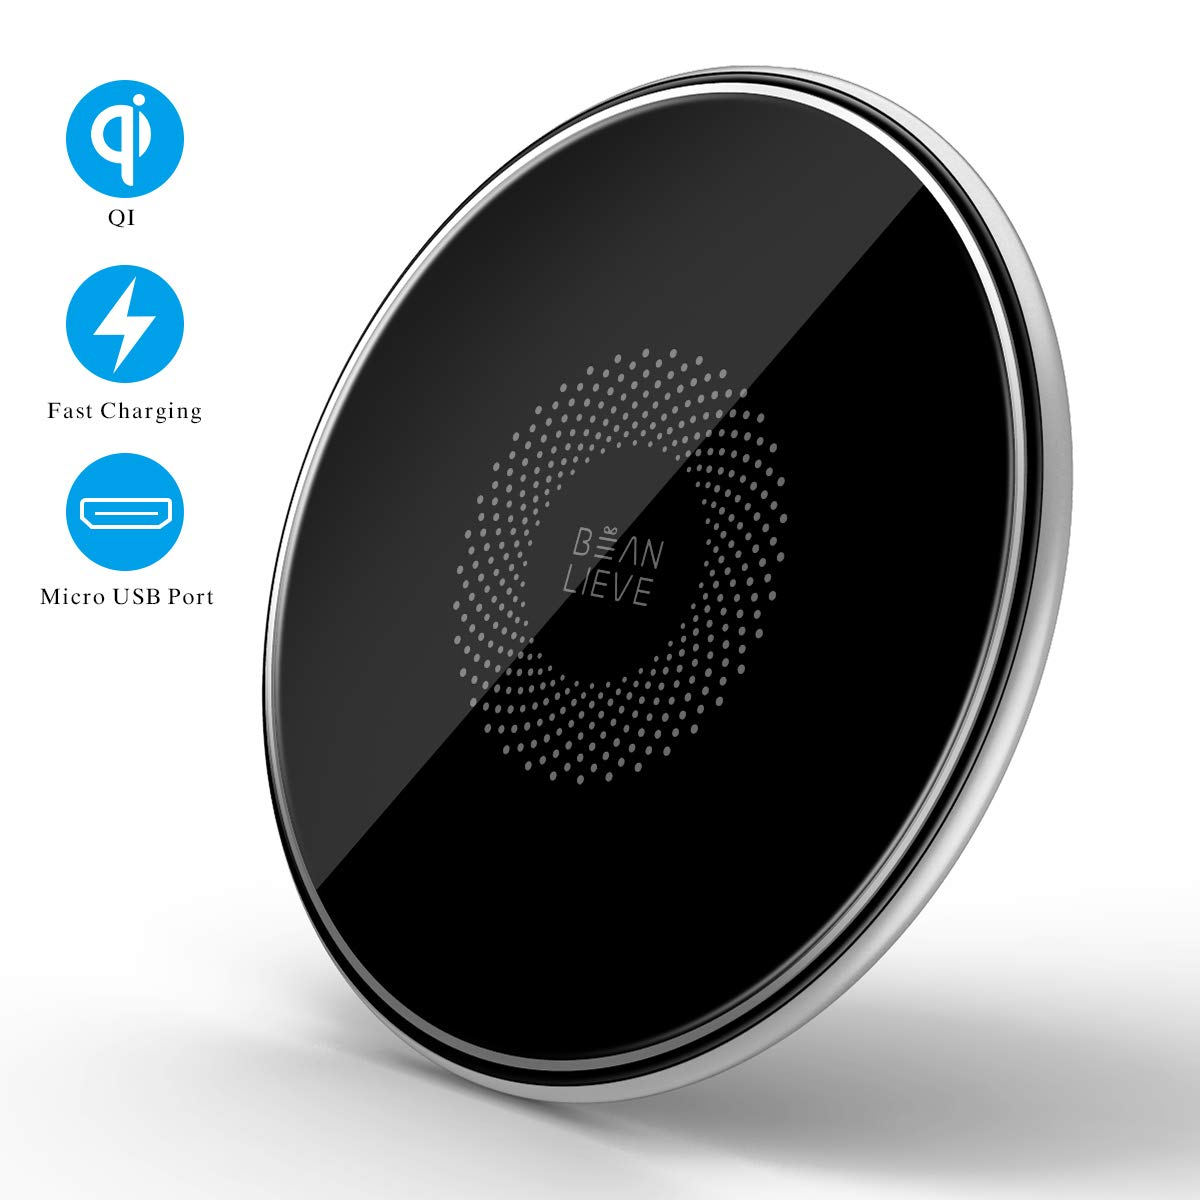 Beanlieve 10W Wireless Charger Qi-Certified - Metal Wireless Charging Pad Compatible with iPhone 11/11Pro/11Pro Max/X Max/XS/XR/X, Galaxy S10/S10+/S9/S9+/Note9 and More,LG G6+/G7/V35/V40